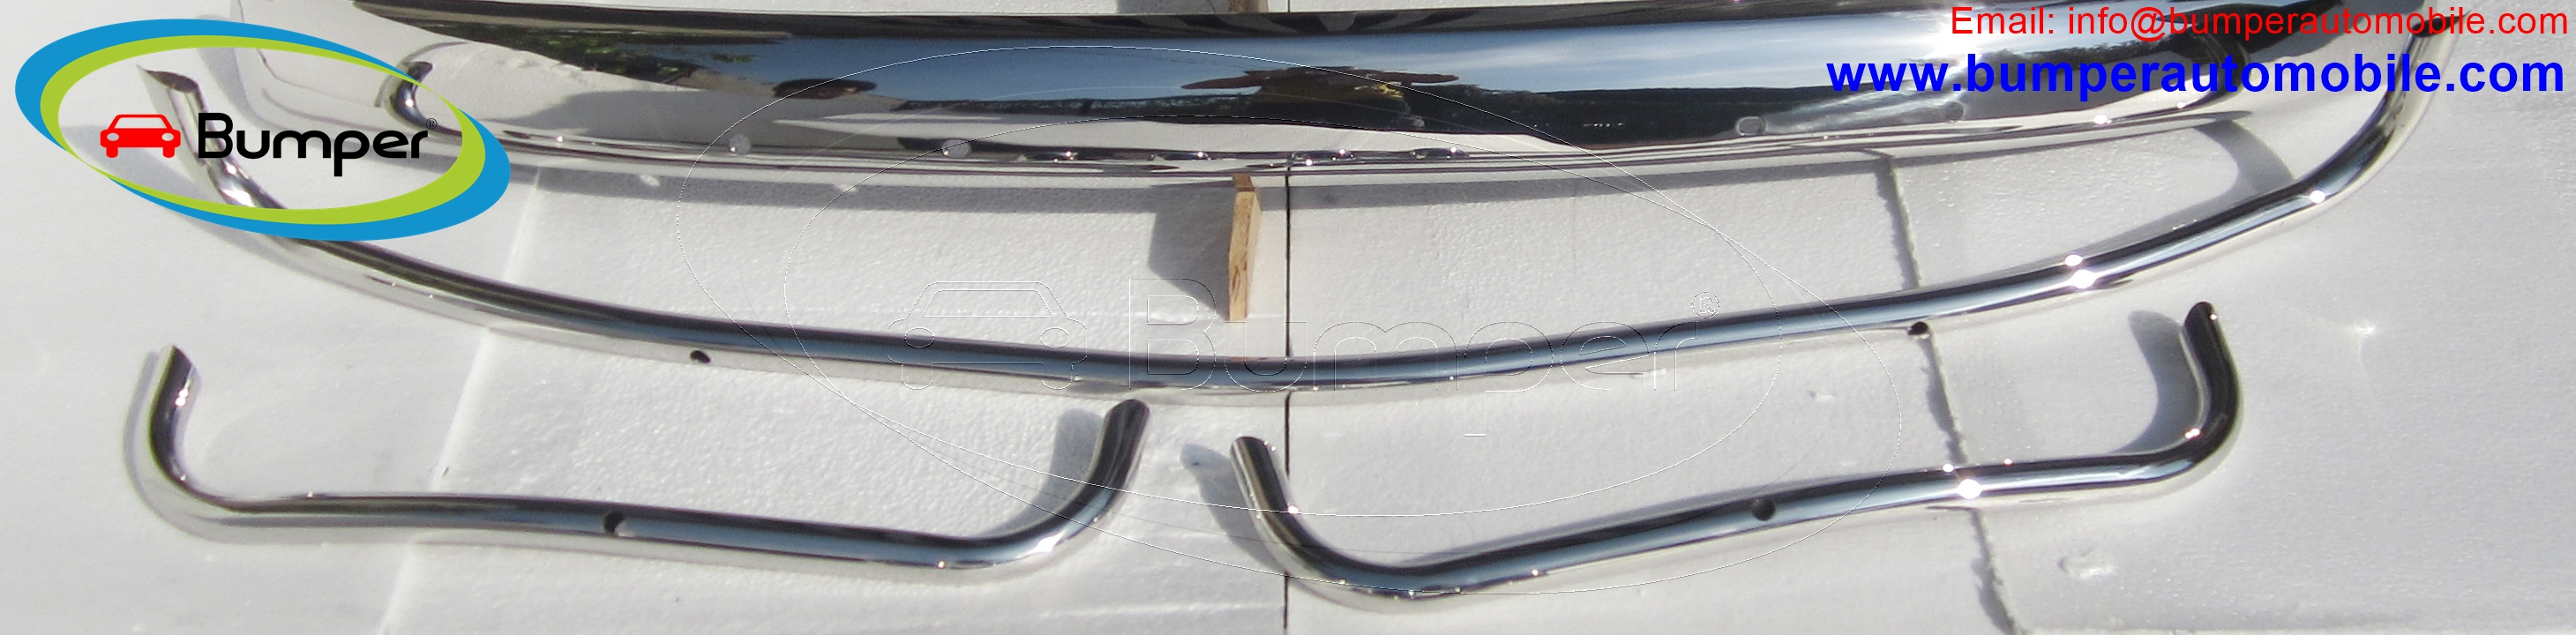 towel rails of VW beetle US